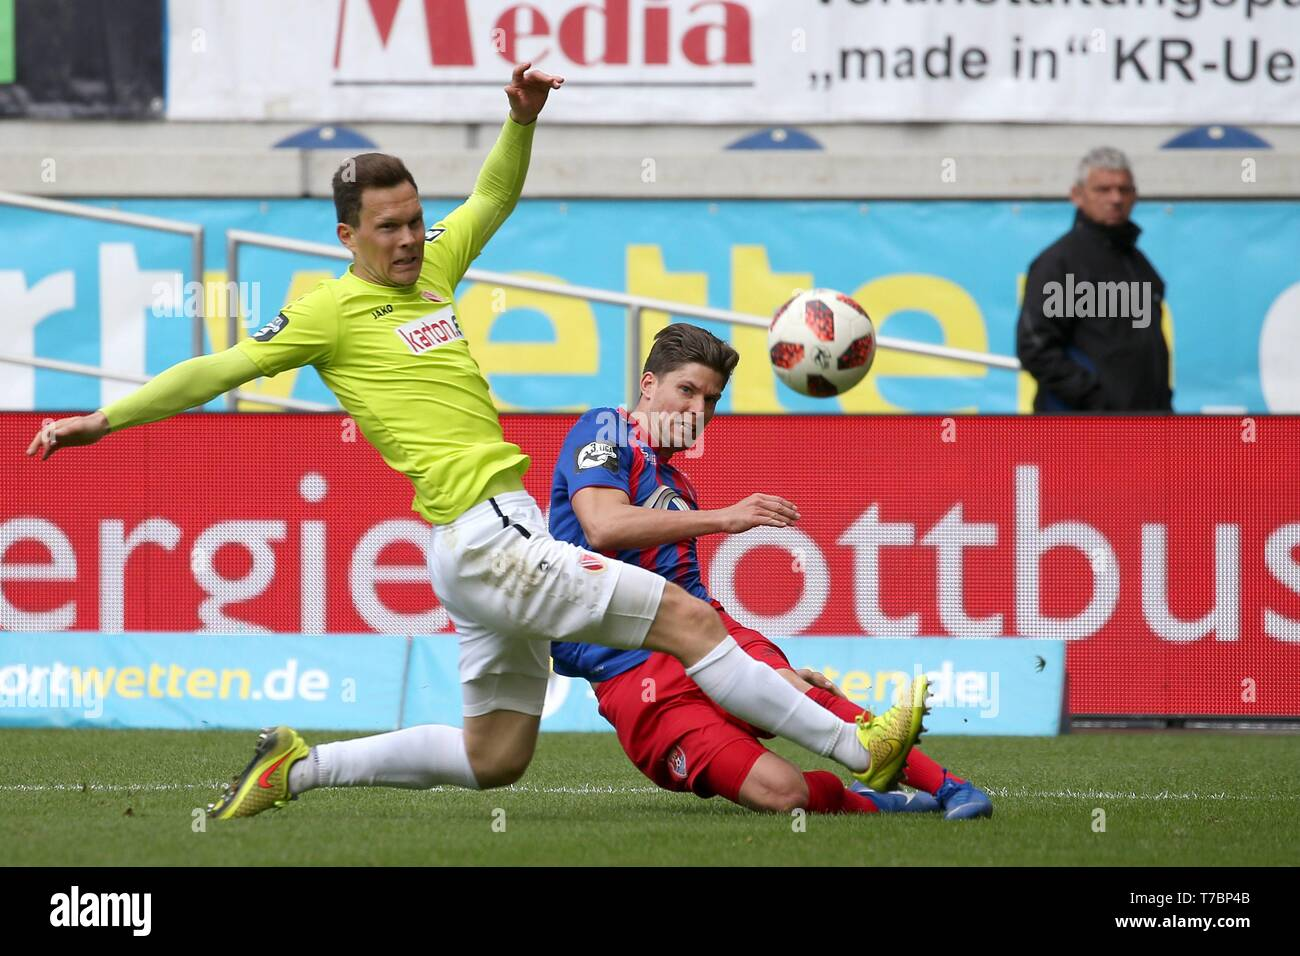 Duisburg, Deutschland. 05th May, 2019. firo: 05.05.2019 Football, 3. Bundesliga, season 2018/2019 KFC Uerdingen 05 - FC Energie Cottbus Christian Dorda (# 7, KFC Uerdingen 05) in duels with Robert MÃ l ller (# 16, FC Energie Cottbus) | usage worldwide Credit: dpa/Alamy Live News - Stock Image